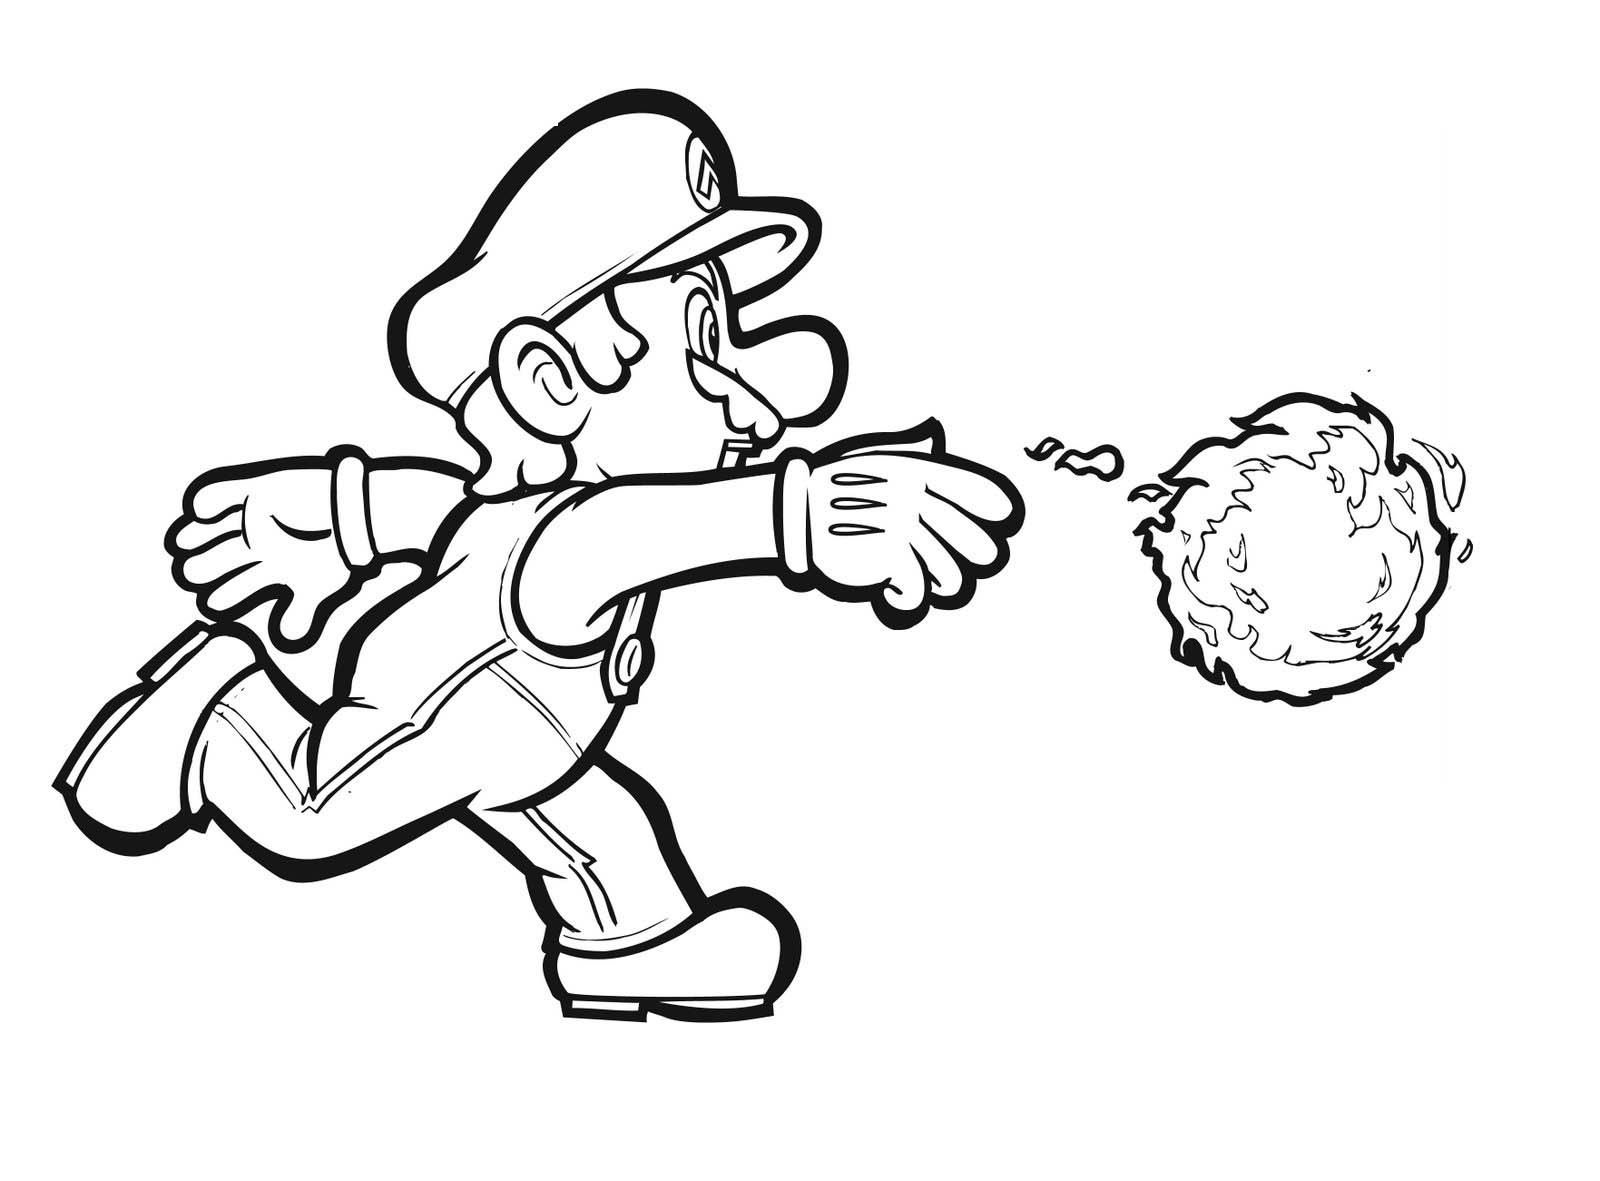 mario bro yoshi coloring pages - photo#50